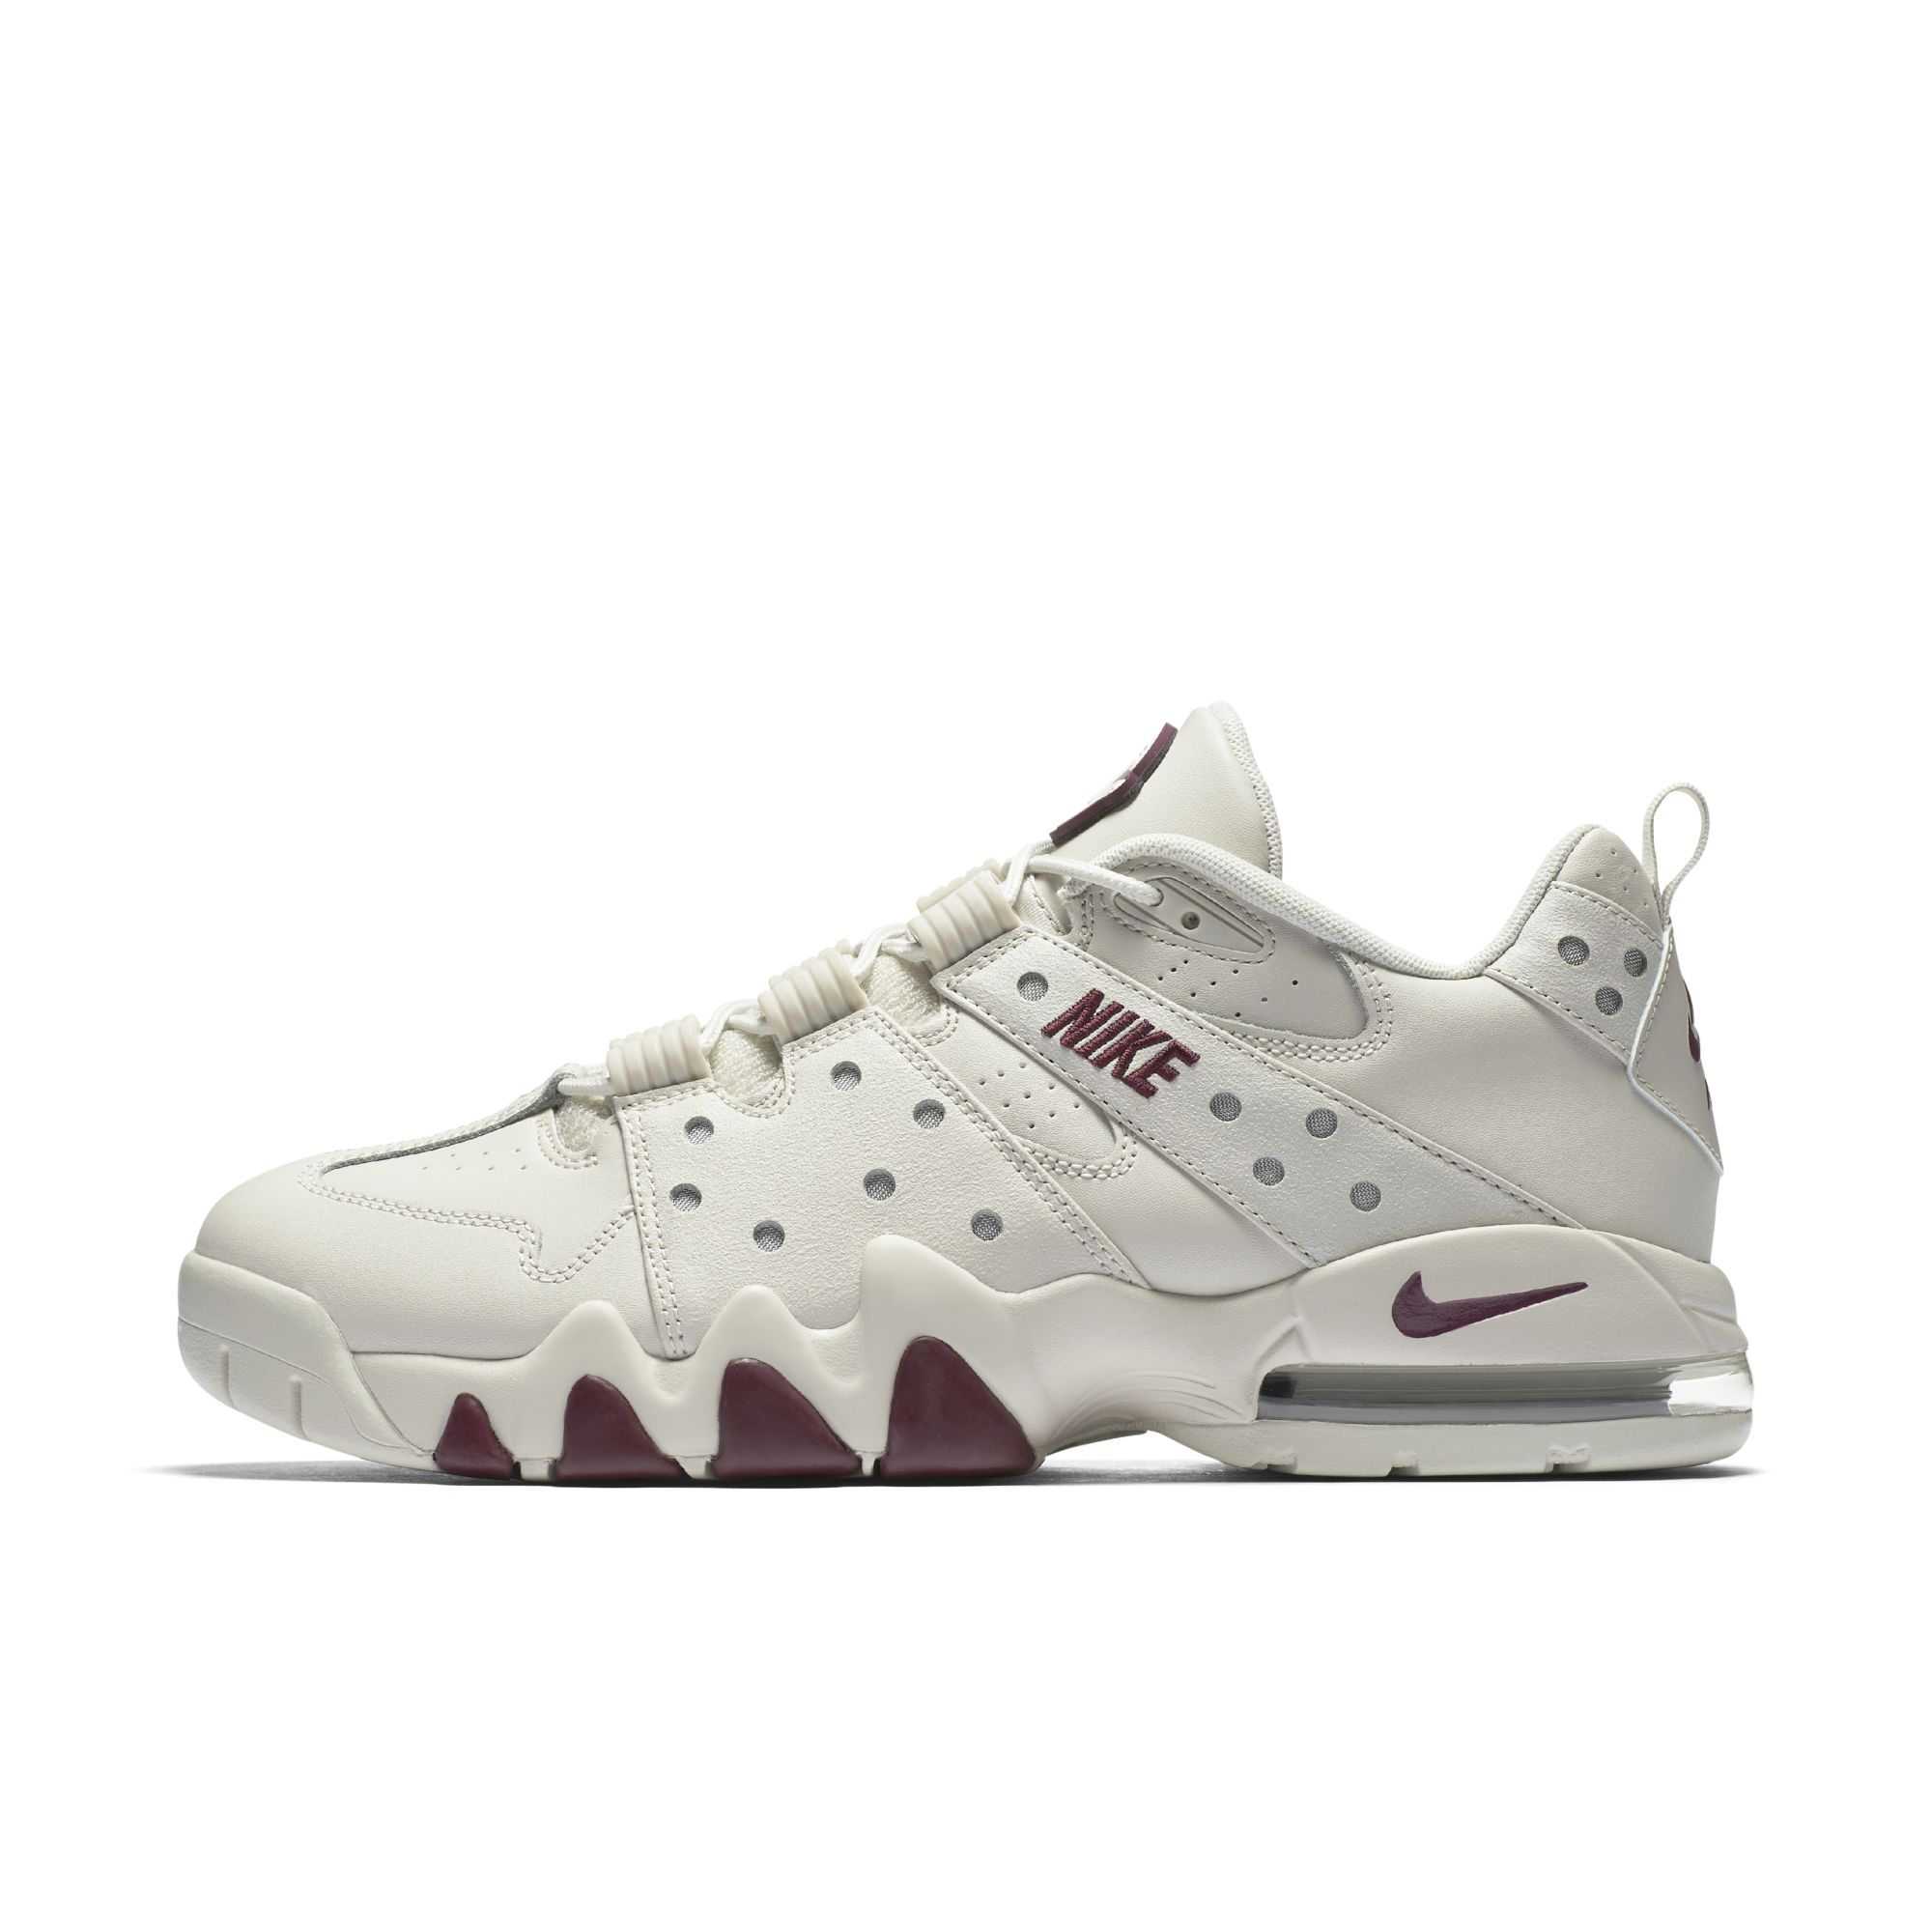 989d68cd300 Nike Air Max CB  94 Low off white 2 - WearTesters